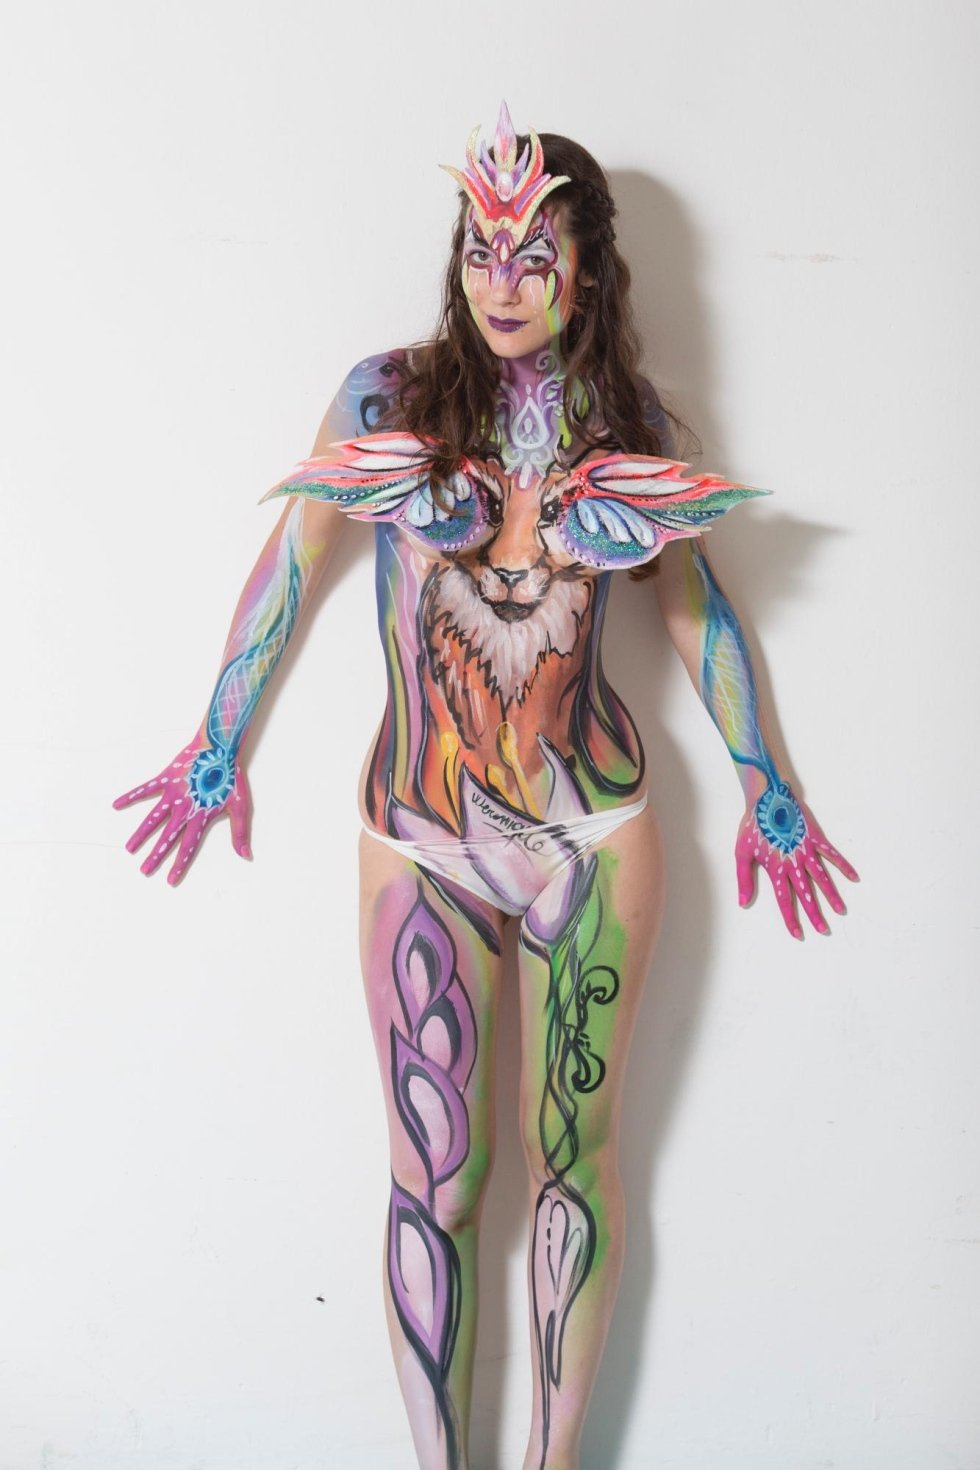 ragazza con body painting totale